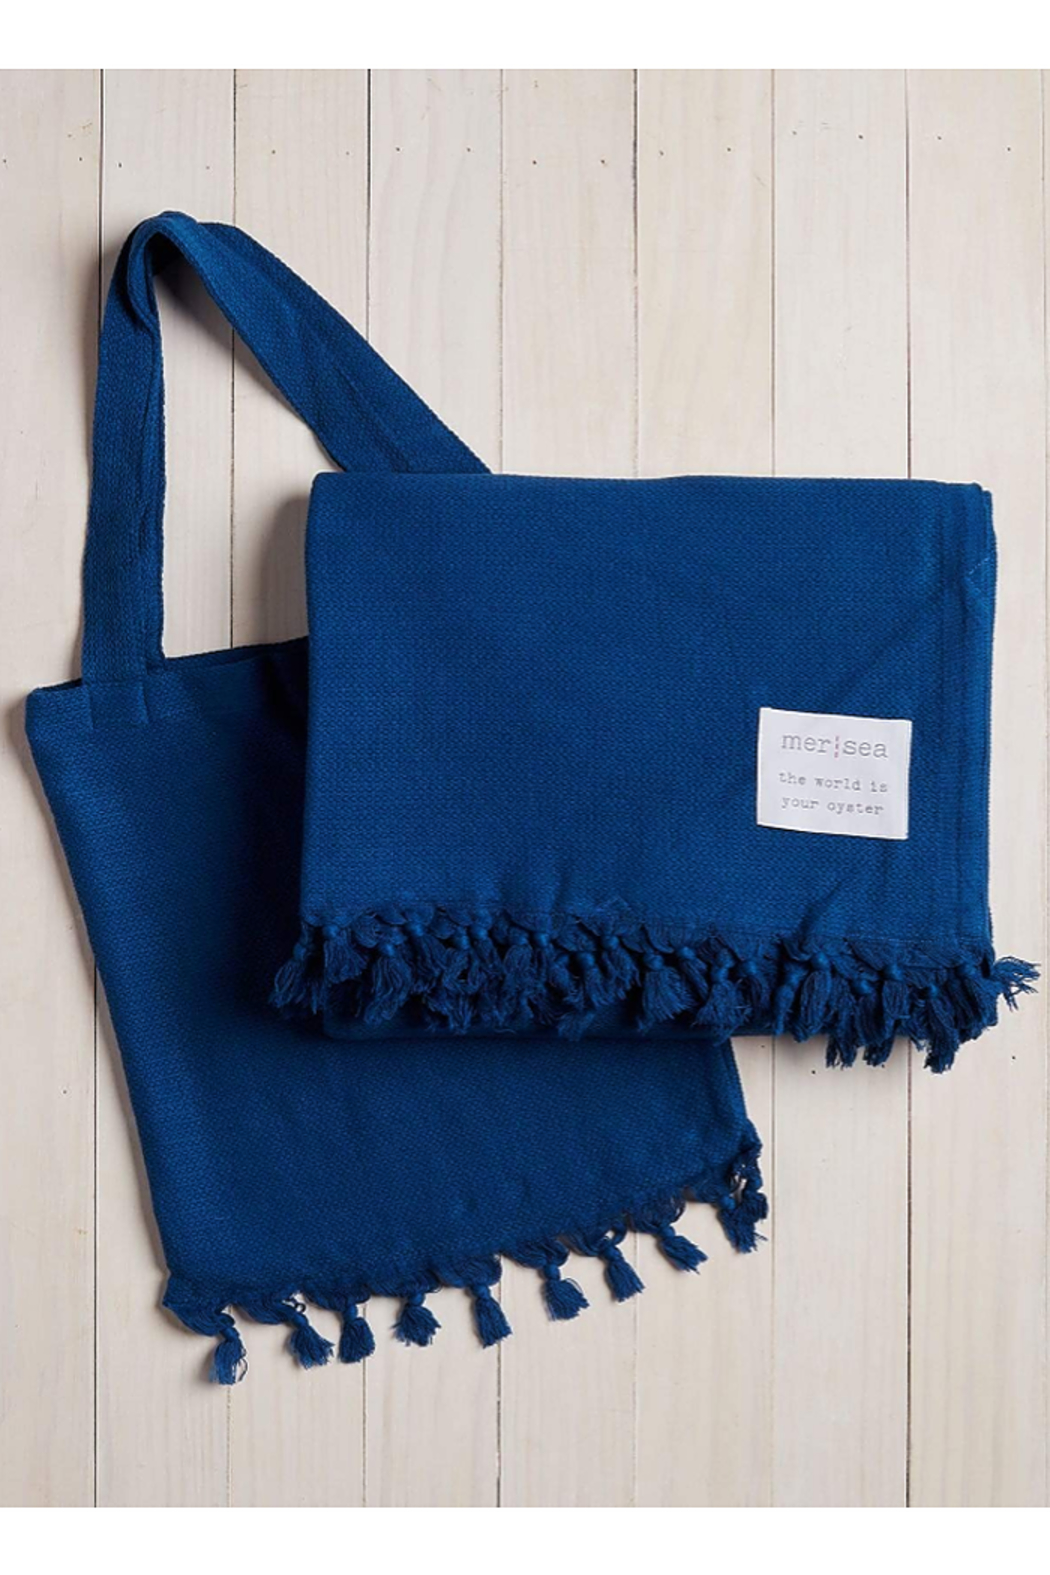 The Birds Nest BEACH BLANKET WITH TOTE BAG - Front Cropped Image